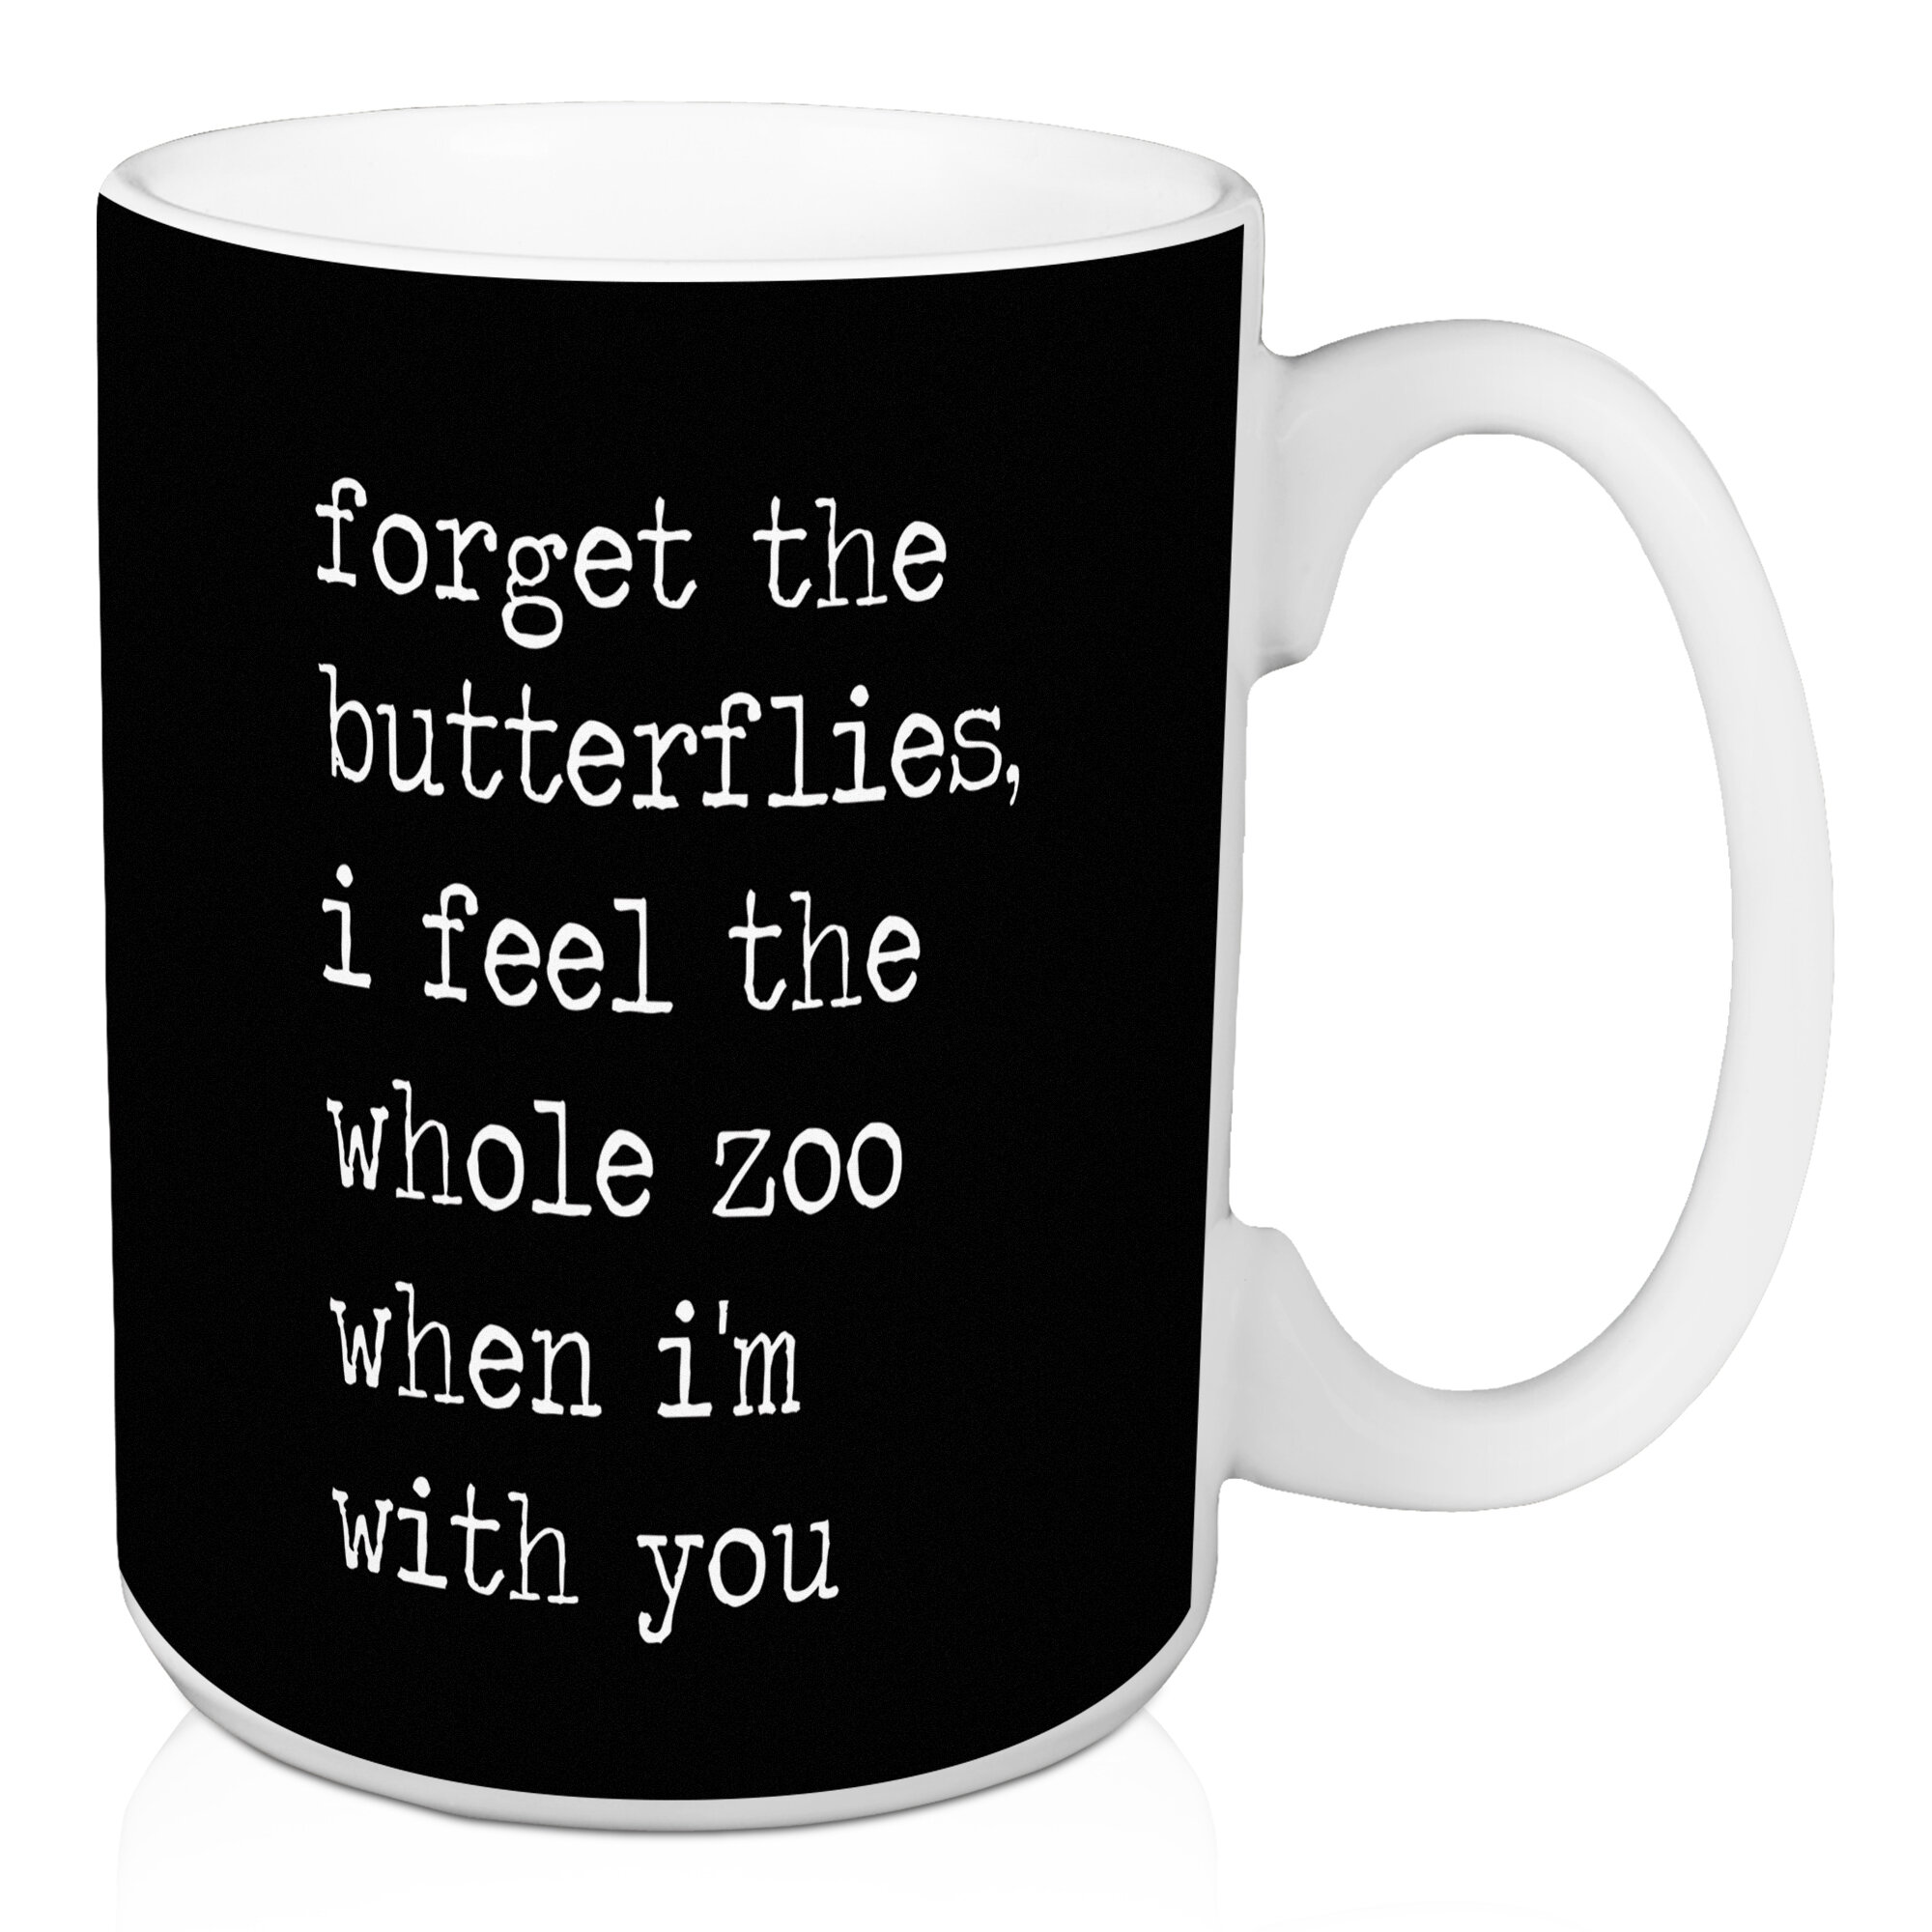 White Coffee Mug Jaxn Forget The Erflies I Feel Whole Zoo When M With You 15 Oz